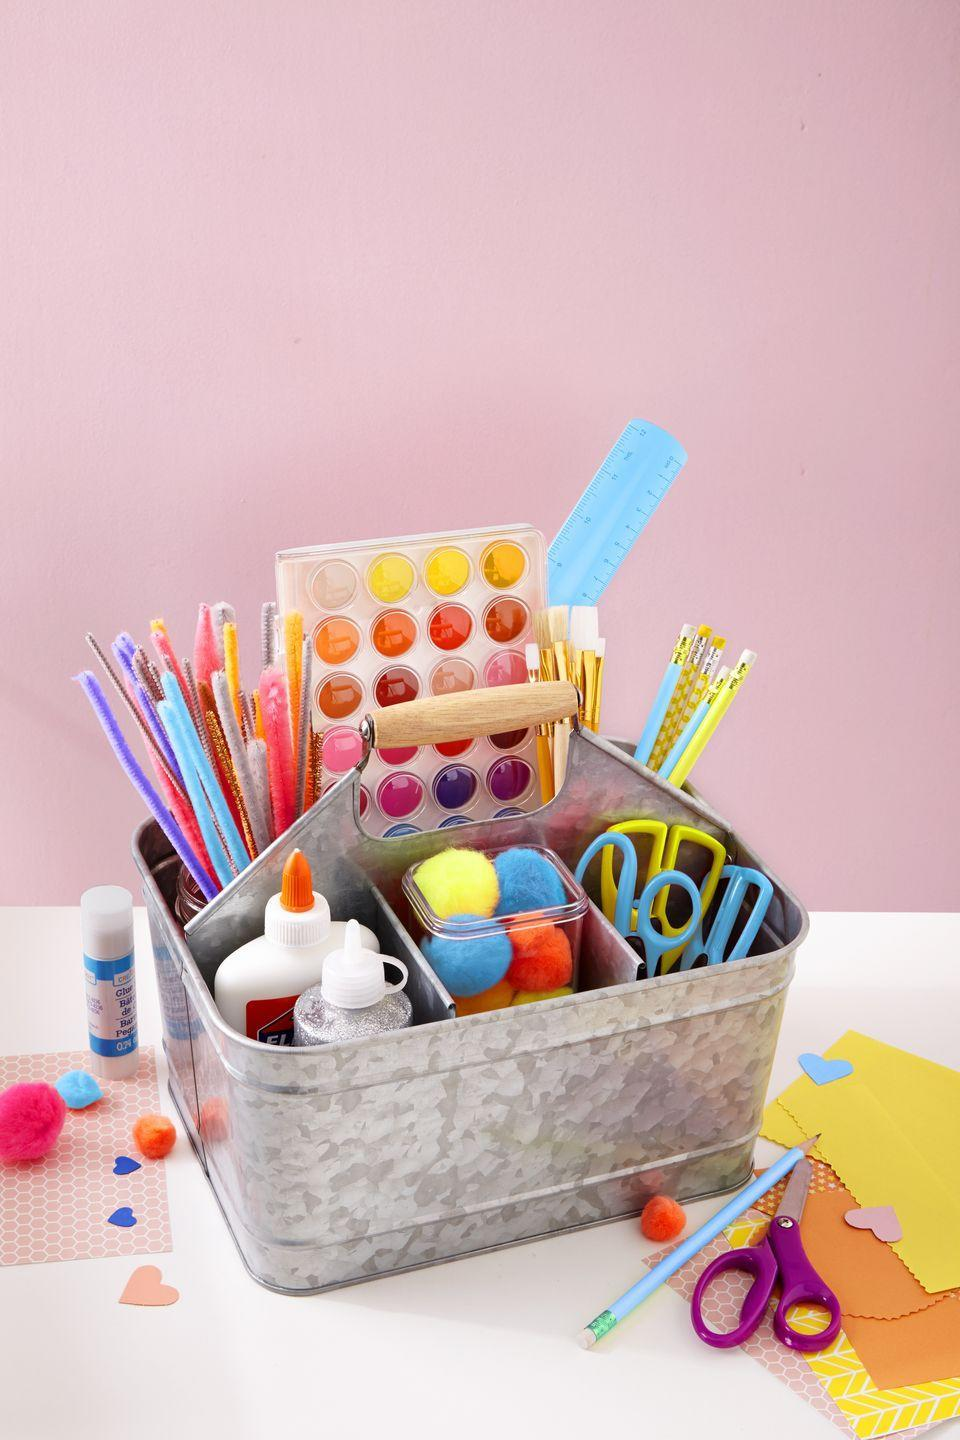 """<p>Make doing homework and school projects easier by keeping all your supplies in a sectioned caddy that can move from room to room and also be easily stored when not in use. Keep it bare, or dress it up like organizing guru <a href=""""http://www.iheartorganizing.com/2011/06/iheart-organized-art-caddy.html"""" rel=""""nofollow noopener"""" target=""""_blank"""" data-ylk=""""slk:Jen Jones"""" class=""""link rapid-noclick-resp"""">Jen Jones</a>! </p>"""